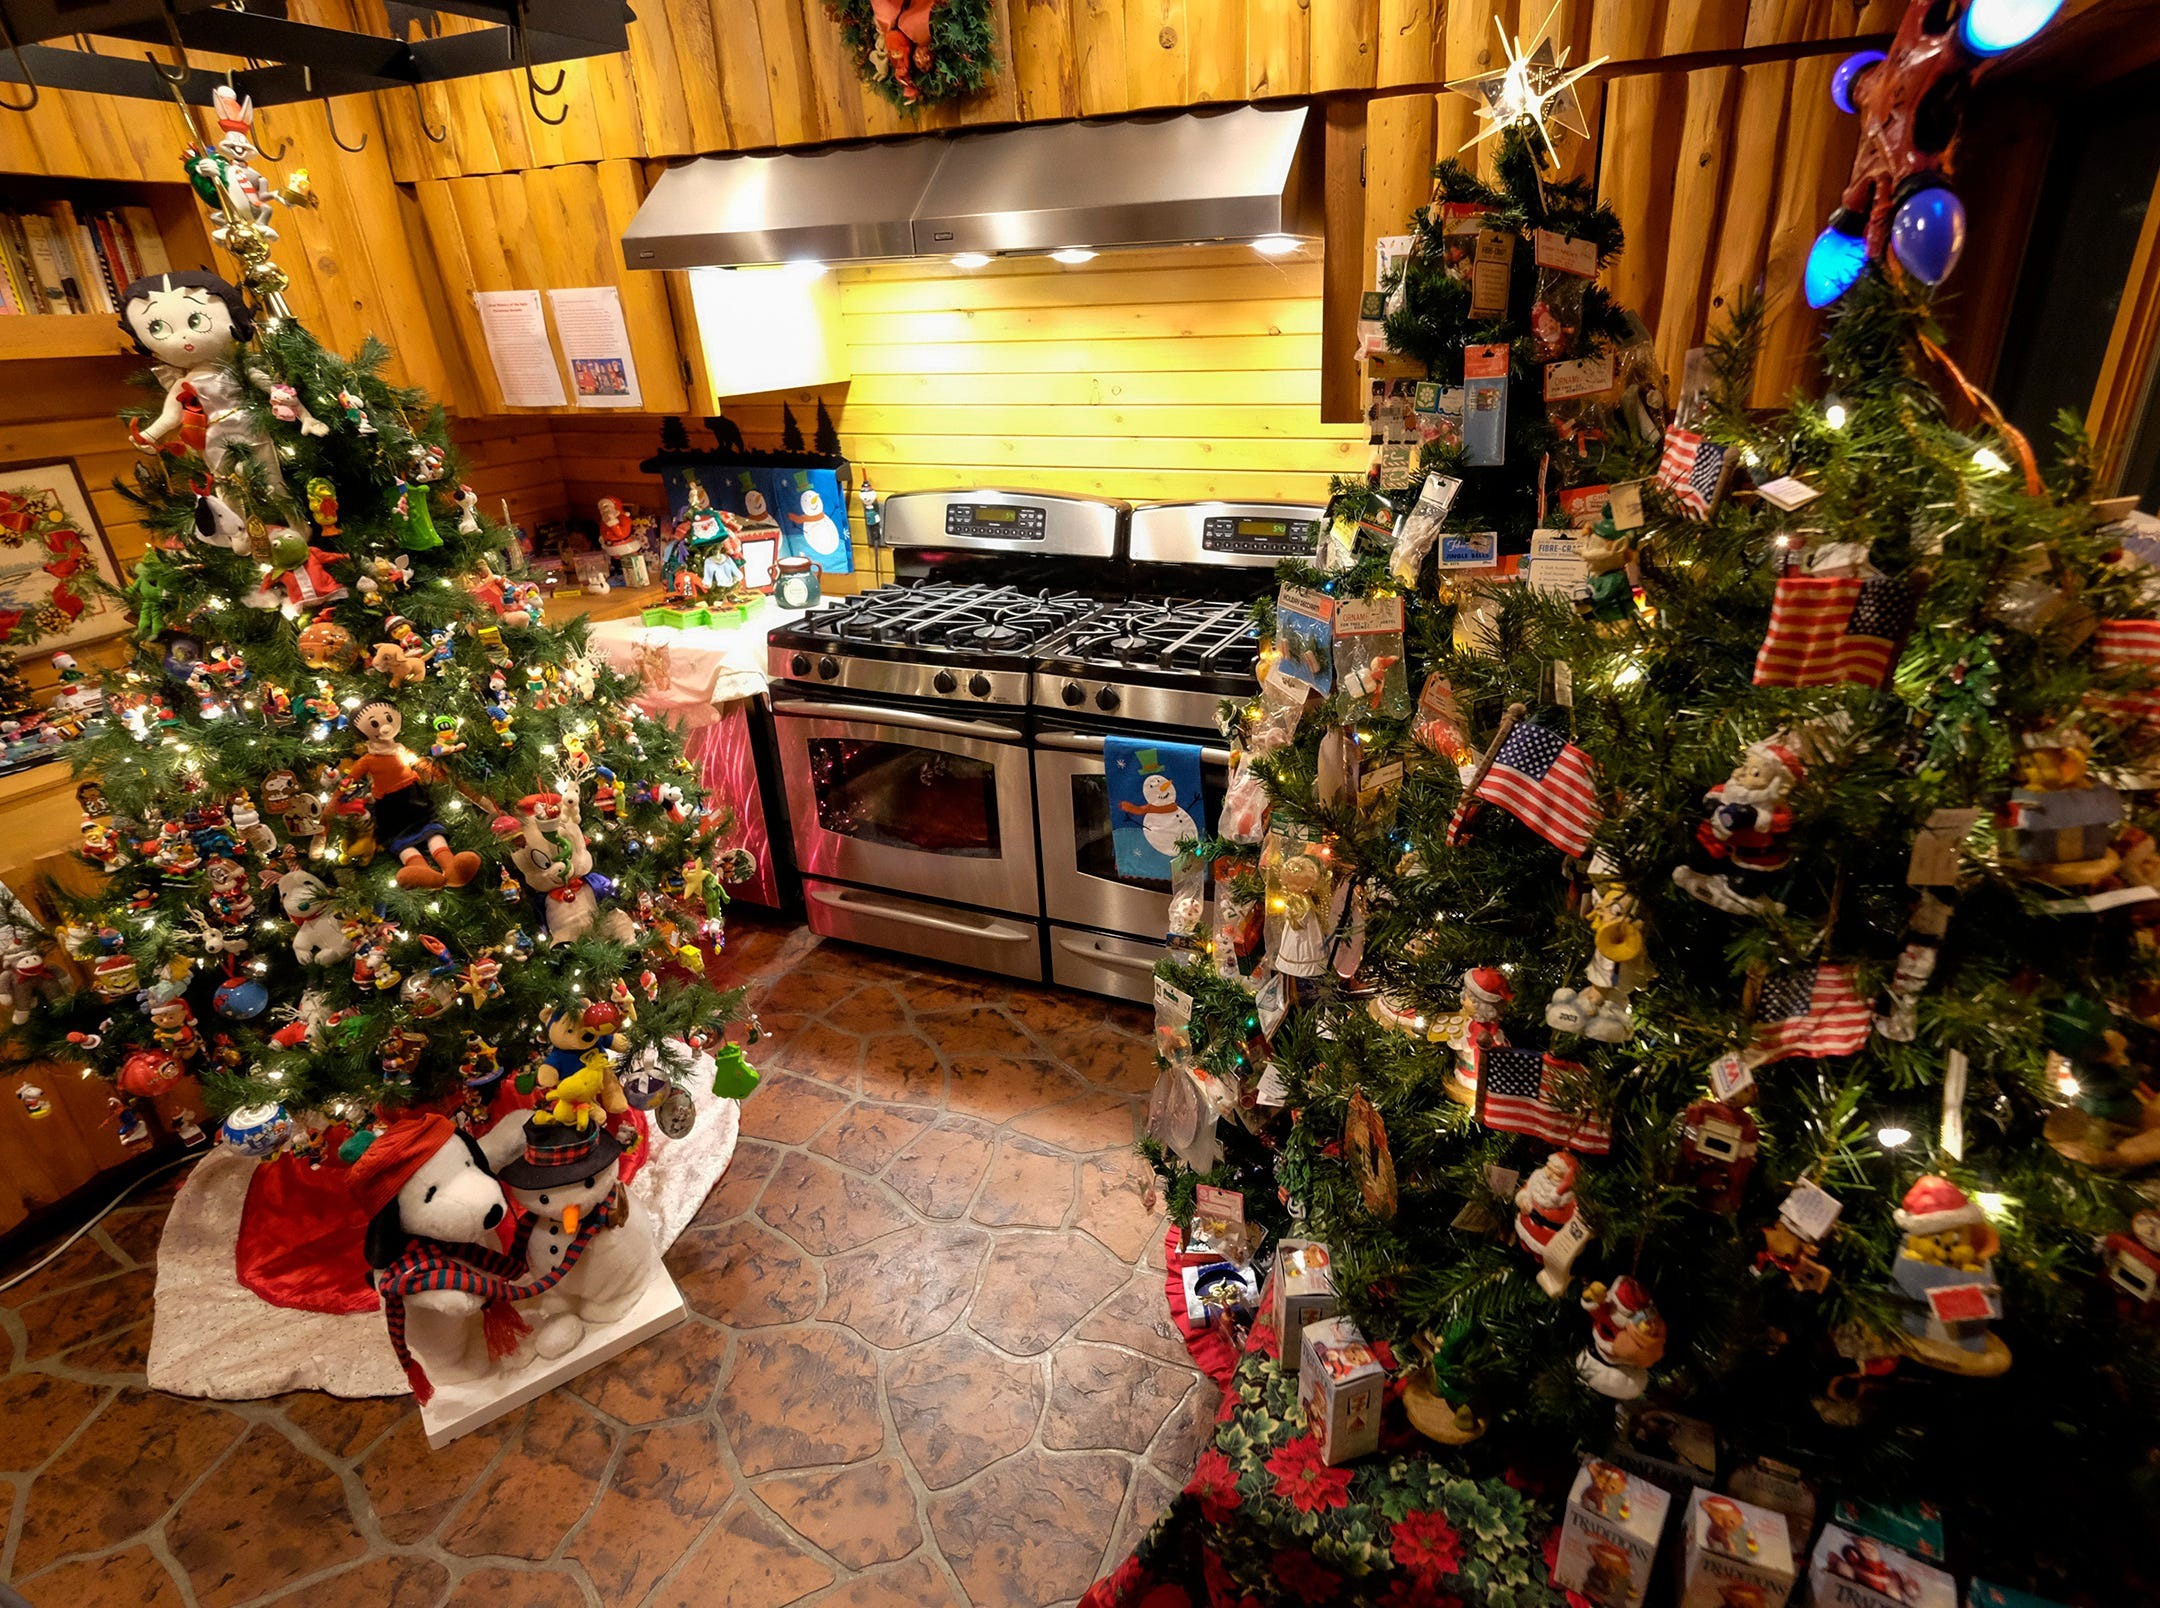 Themed Christmas trees are arranged in one of the kitchens of Al and Diane Kodet's home, where the annual History of the Christmas Tree Walk is held in Algonac.